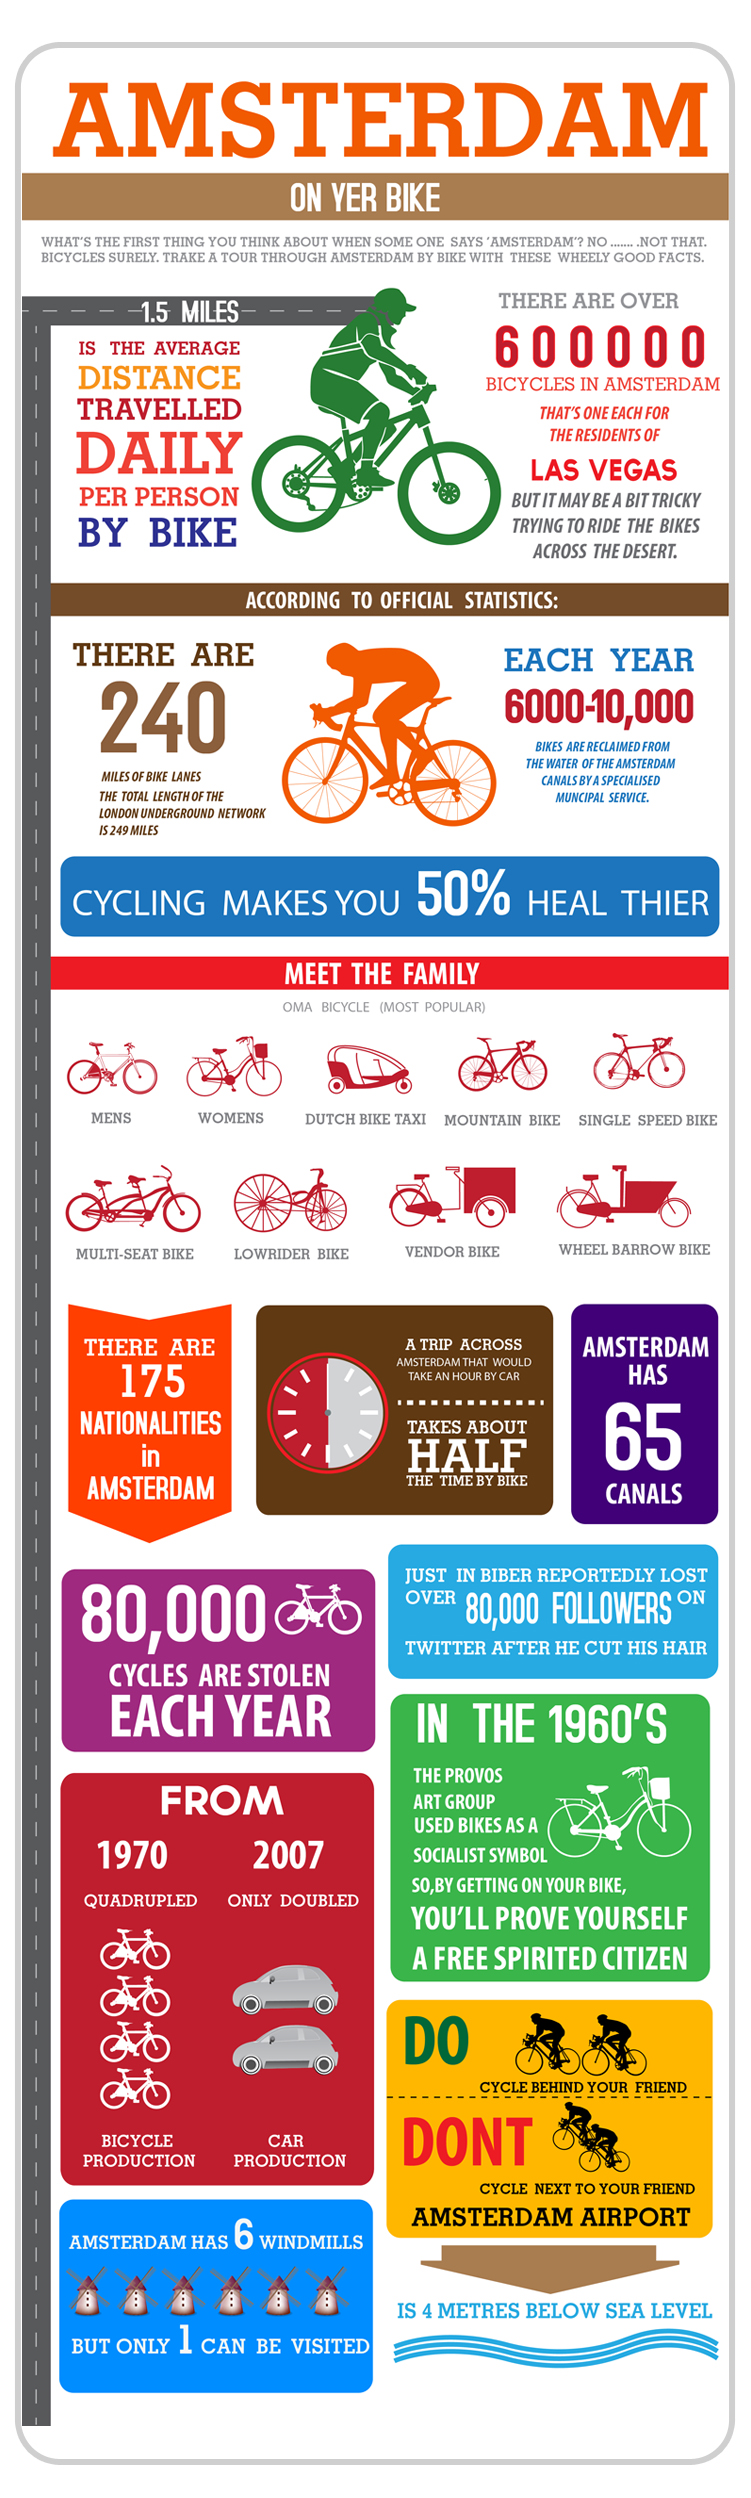 Infographic: Amsterdam - On yer bike